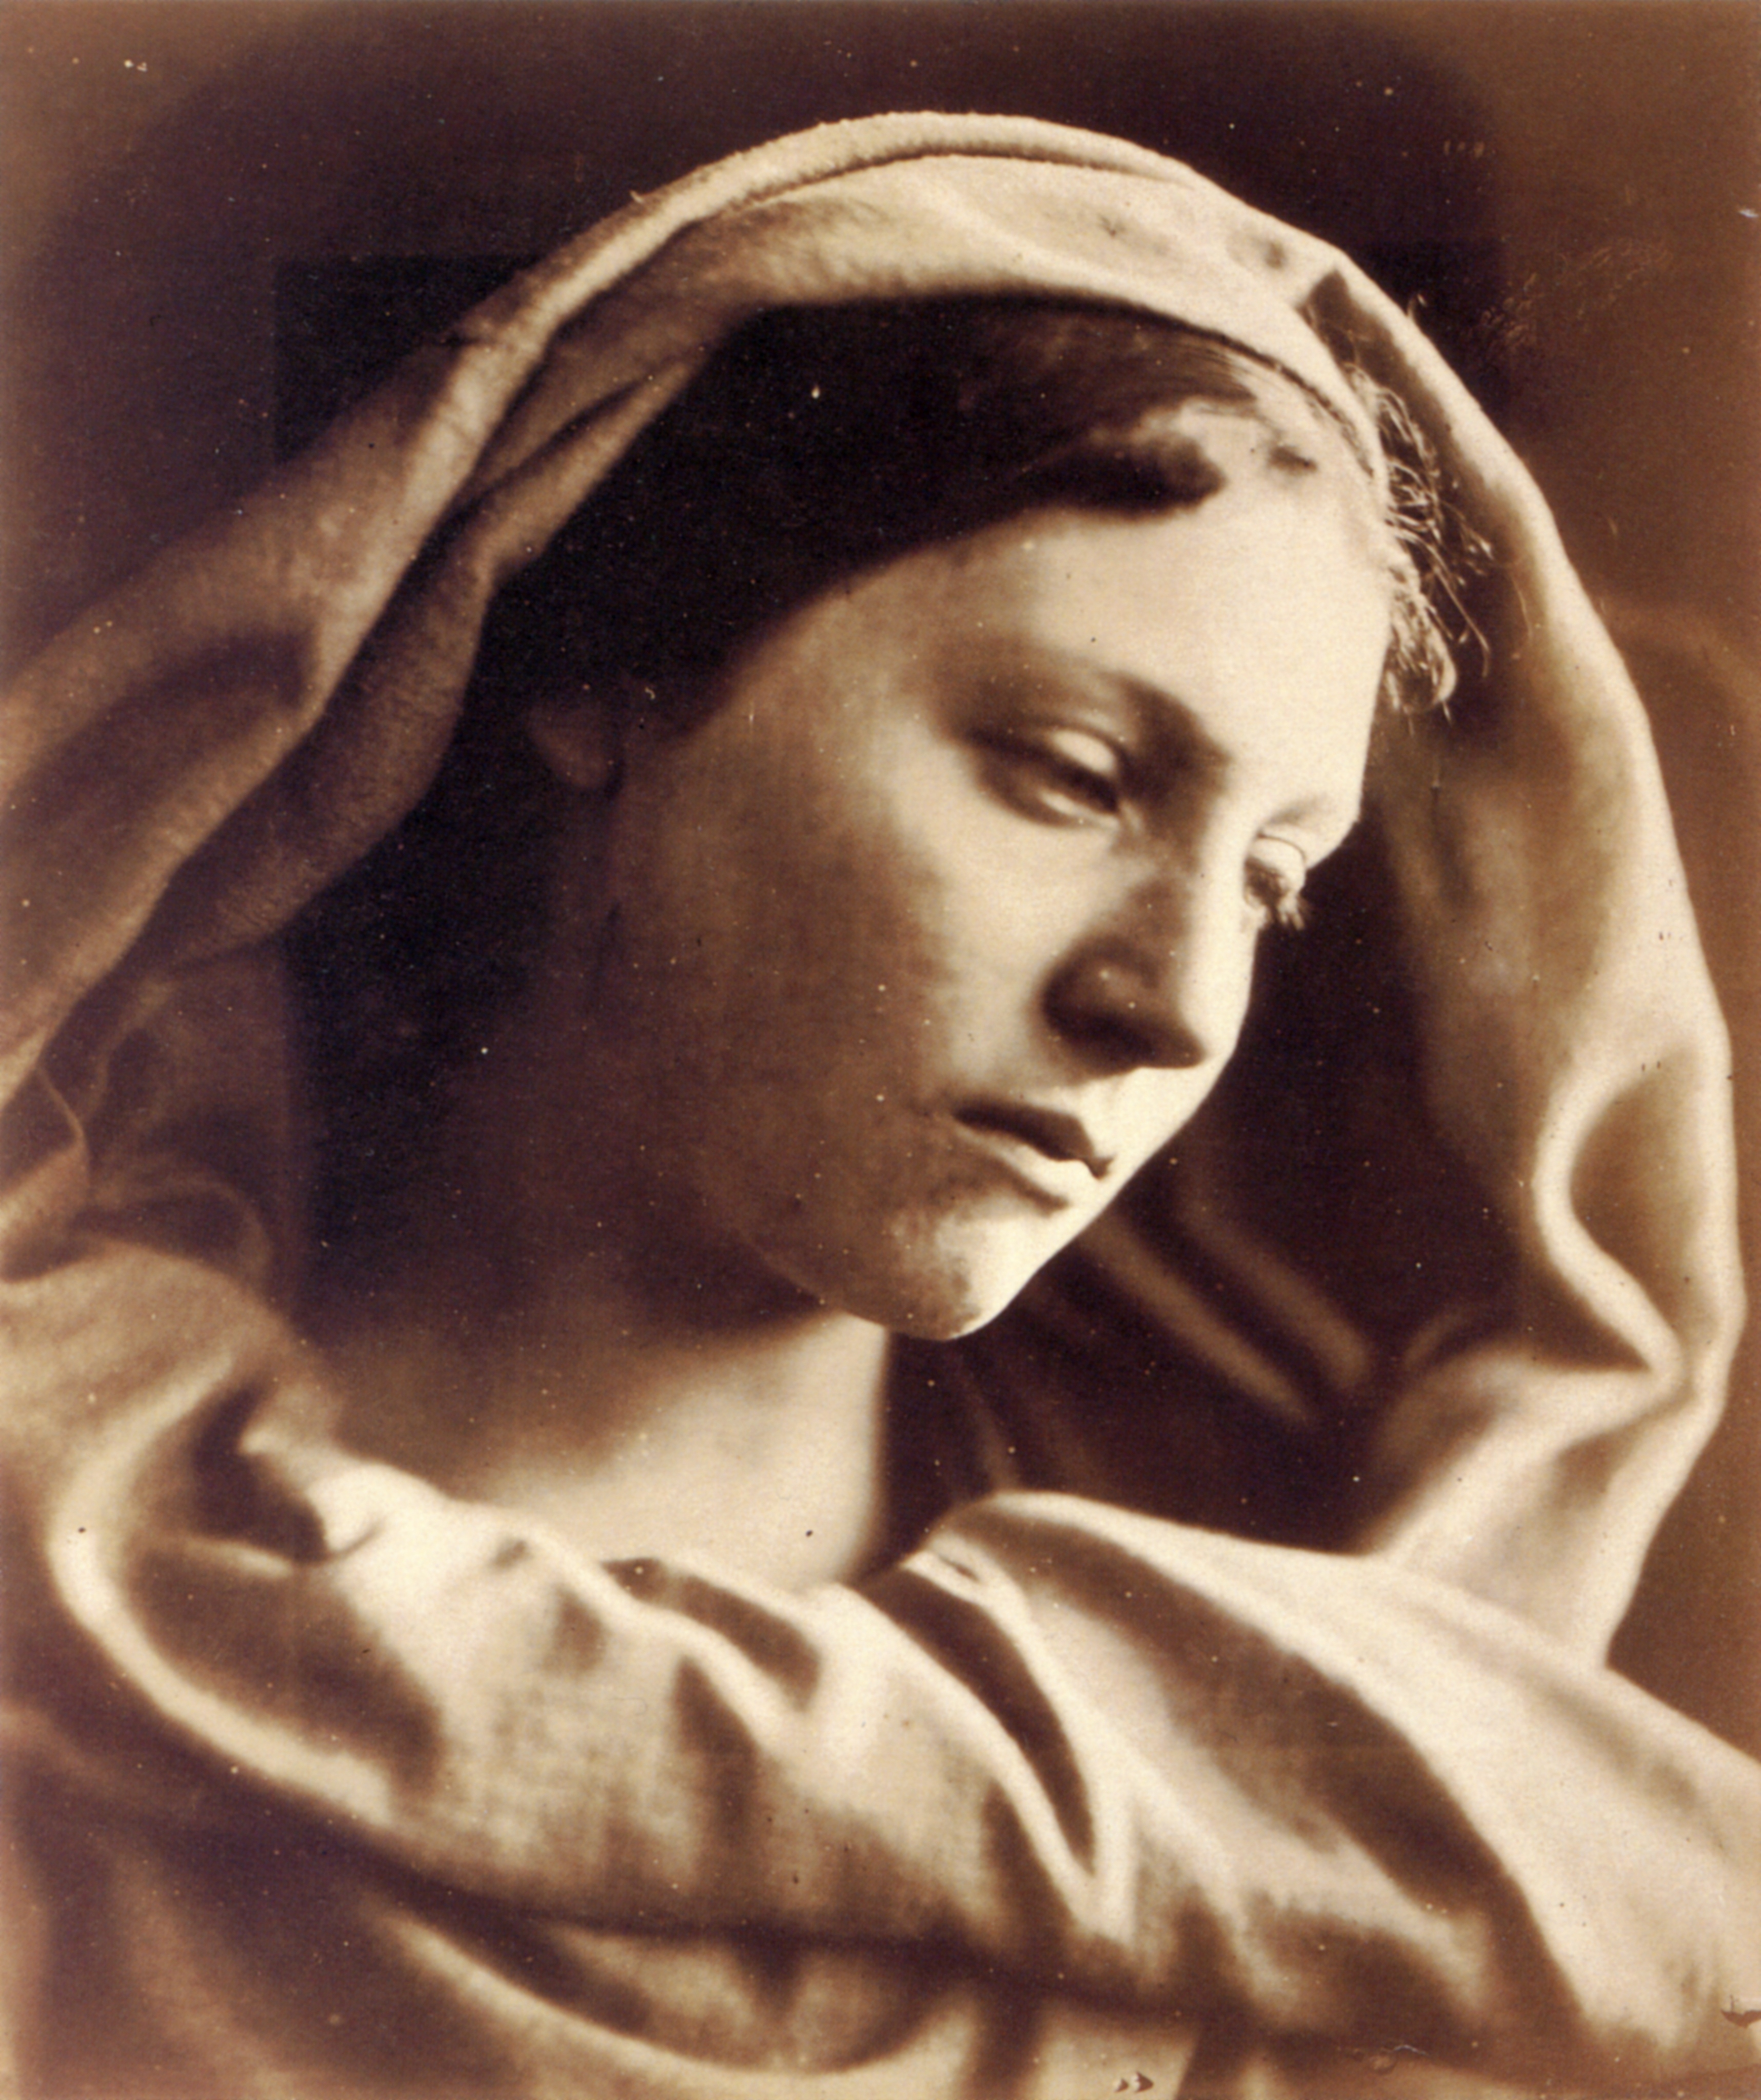 http://upload.wikimedia.org/wikipedia/commons/7/73/Mary_Mother,_by_Julia_Margaret_Cameron.jpg